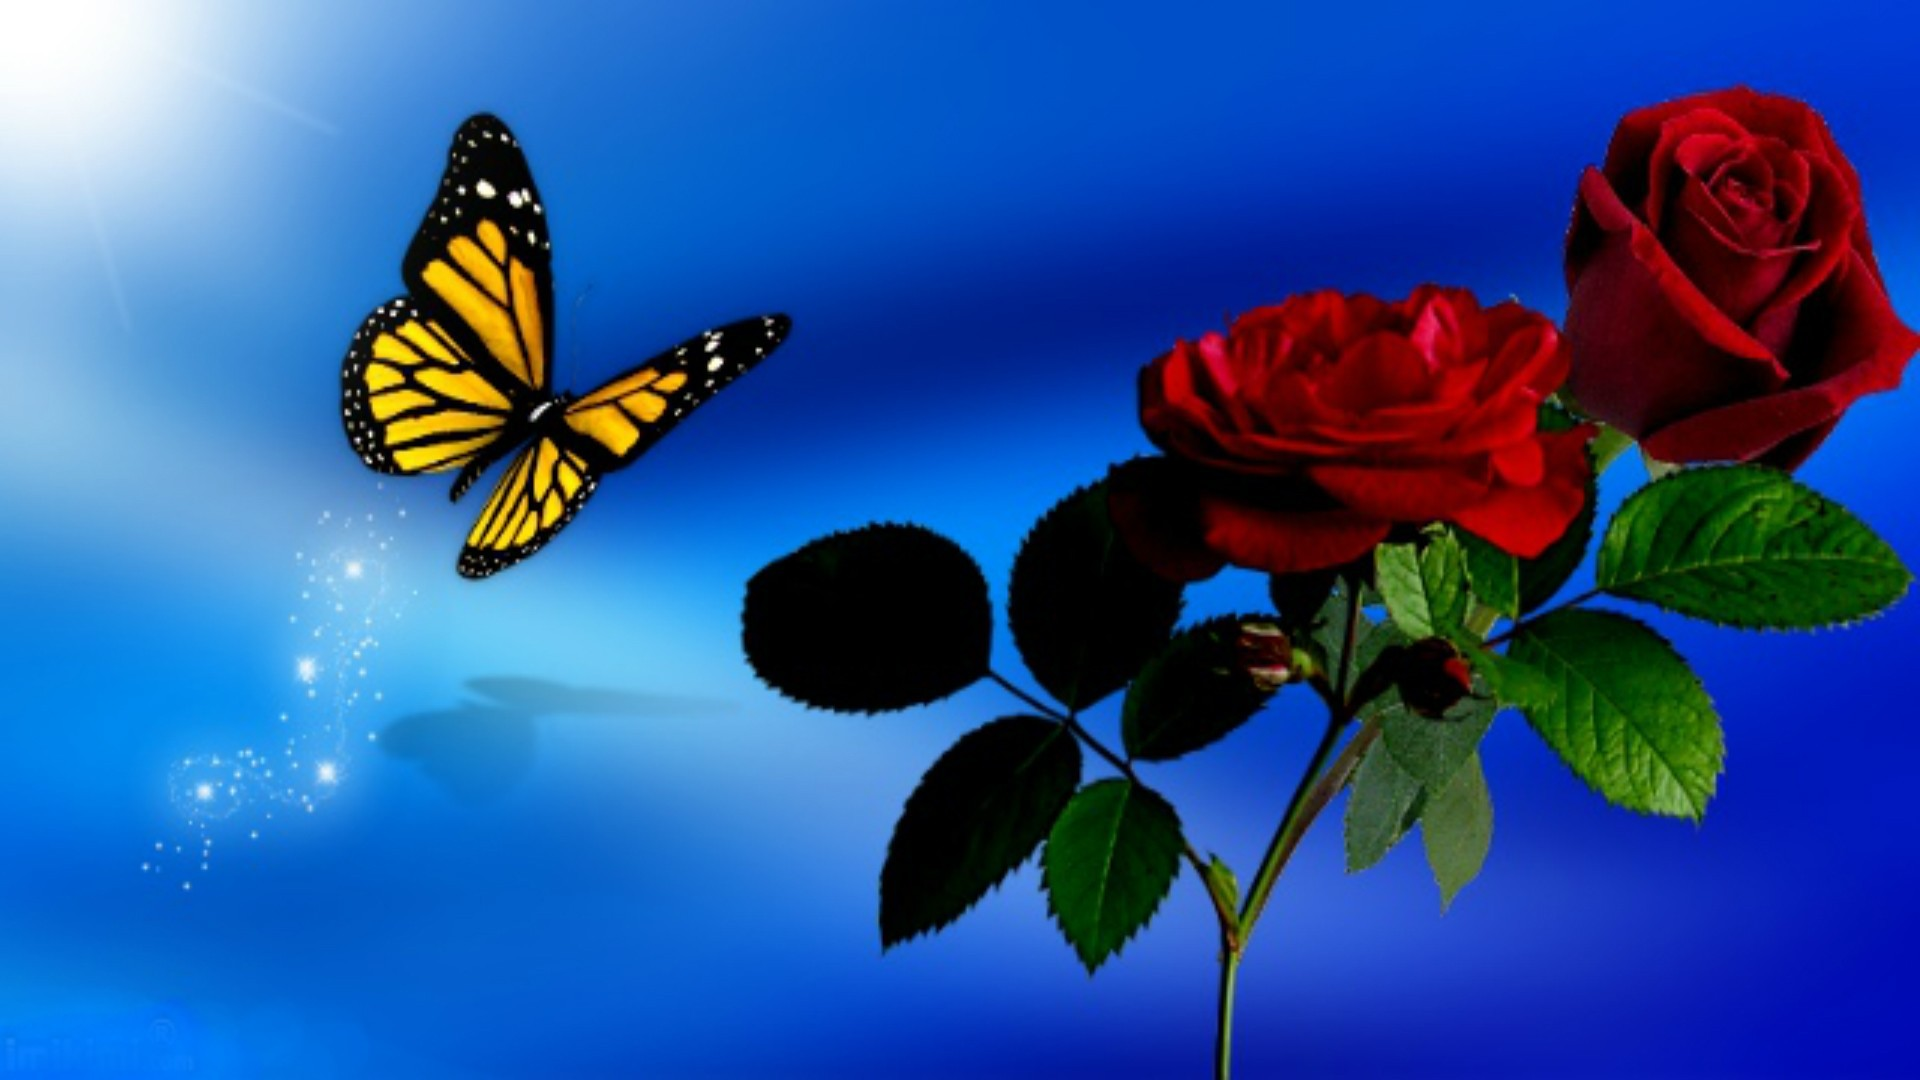 Res: 1920x1080, Butterfly Sky Spring Blue Roses Red Flowers Wallpapers Hd For Facebook